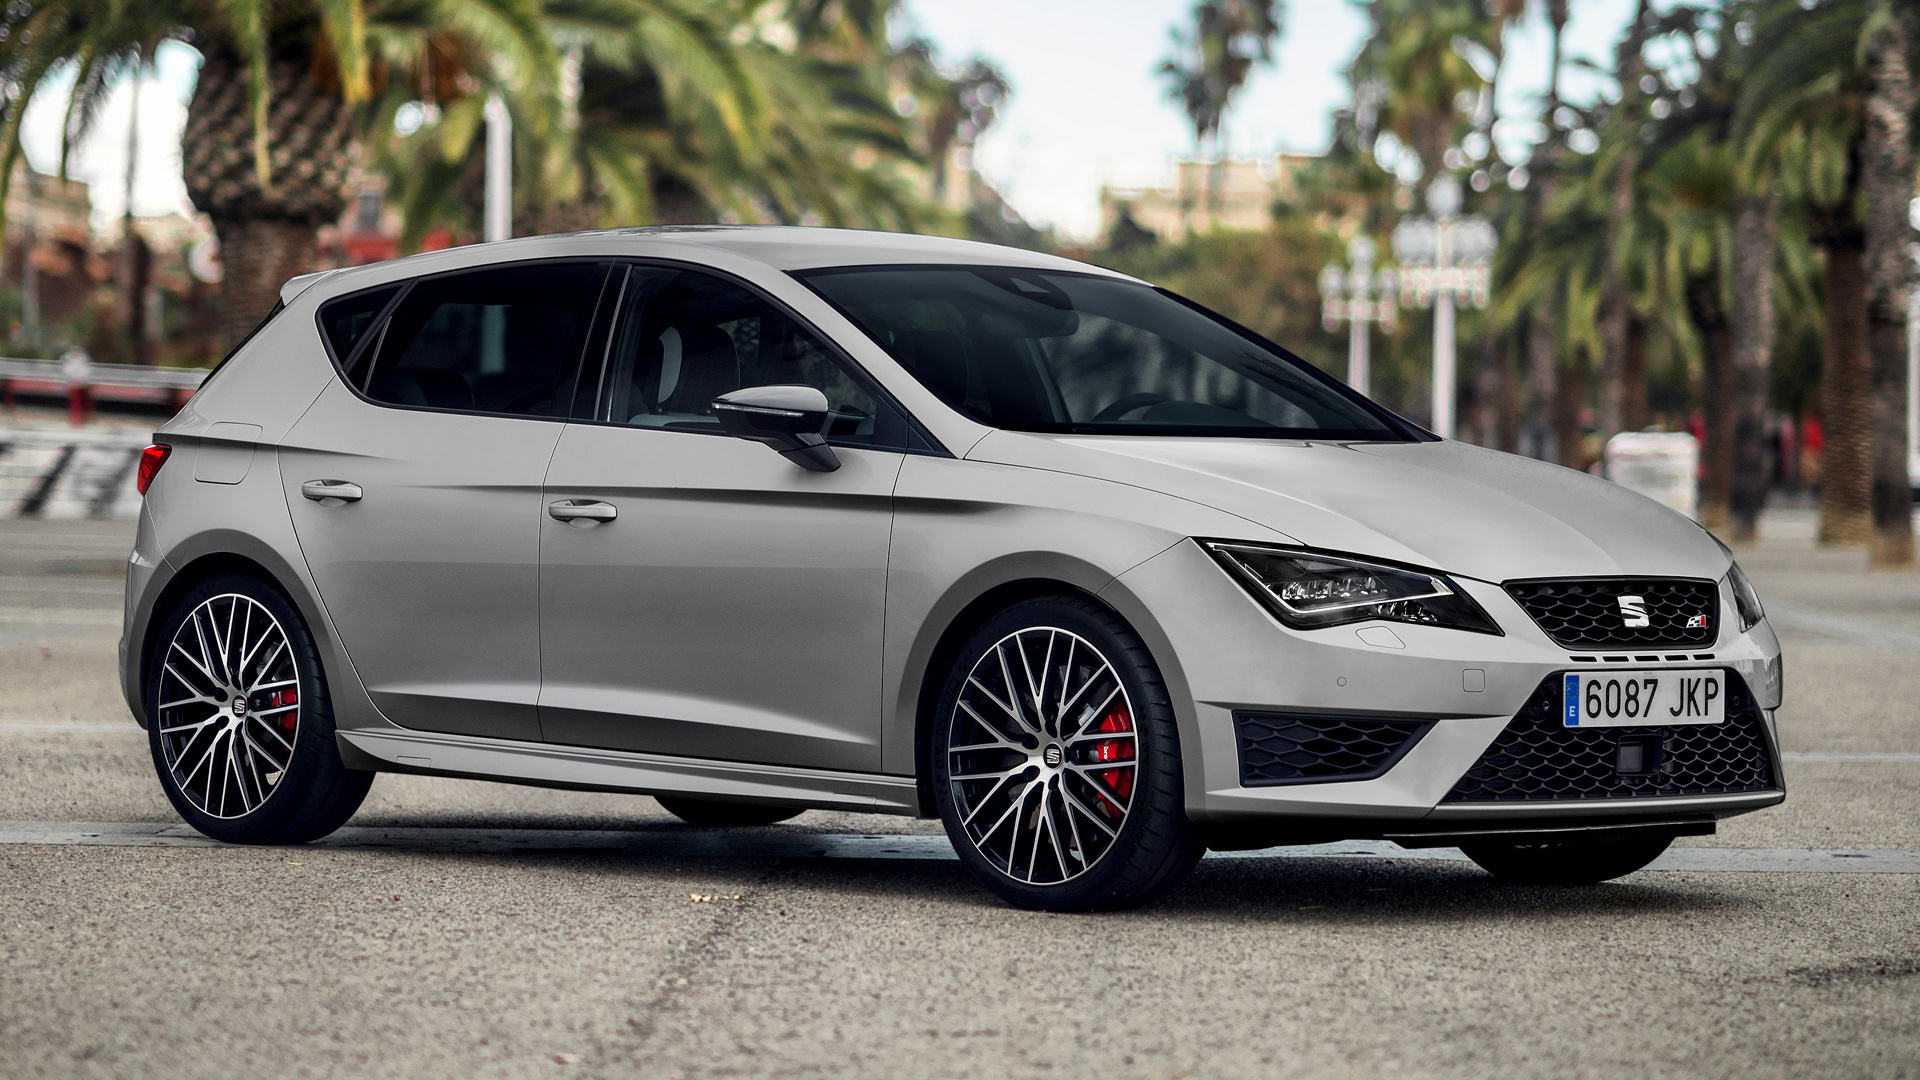 Seat Leon Cupra 290 (2015) Wallpapers and HD Images - Car Pixel